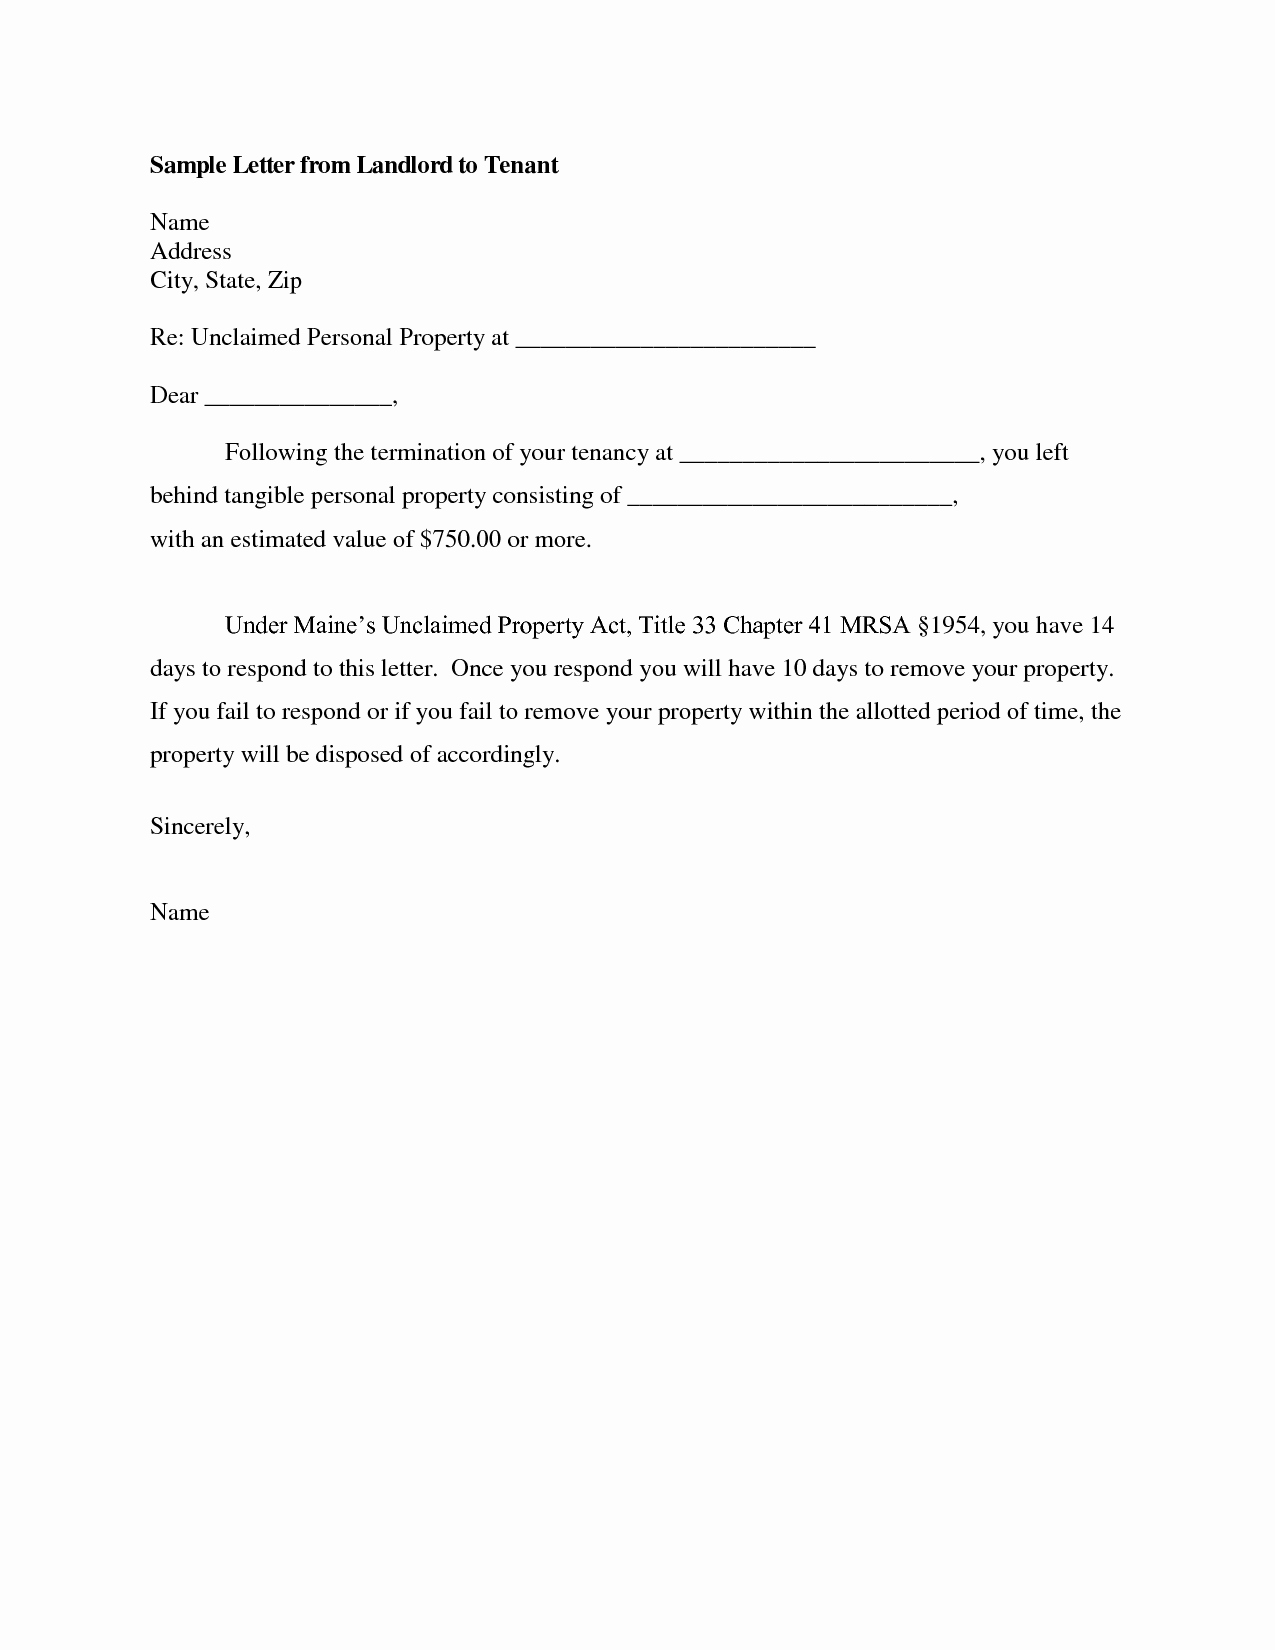 Sample Letter to Landlord Elegant Best S Of Letters From Landlords to Tenants Sample